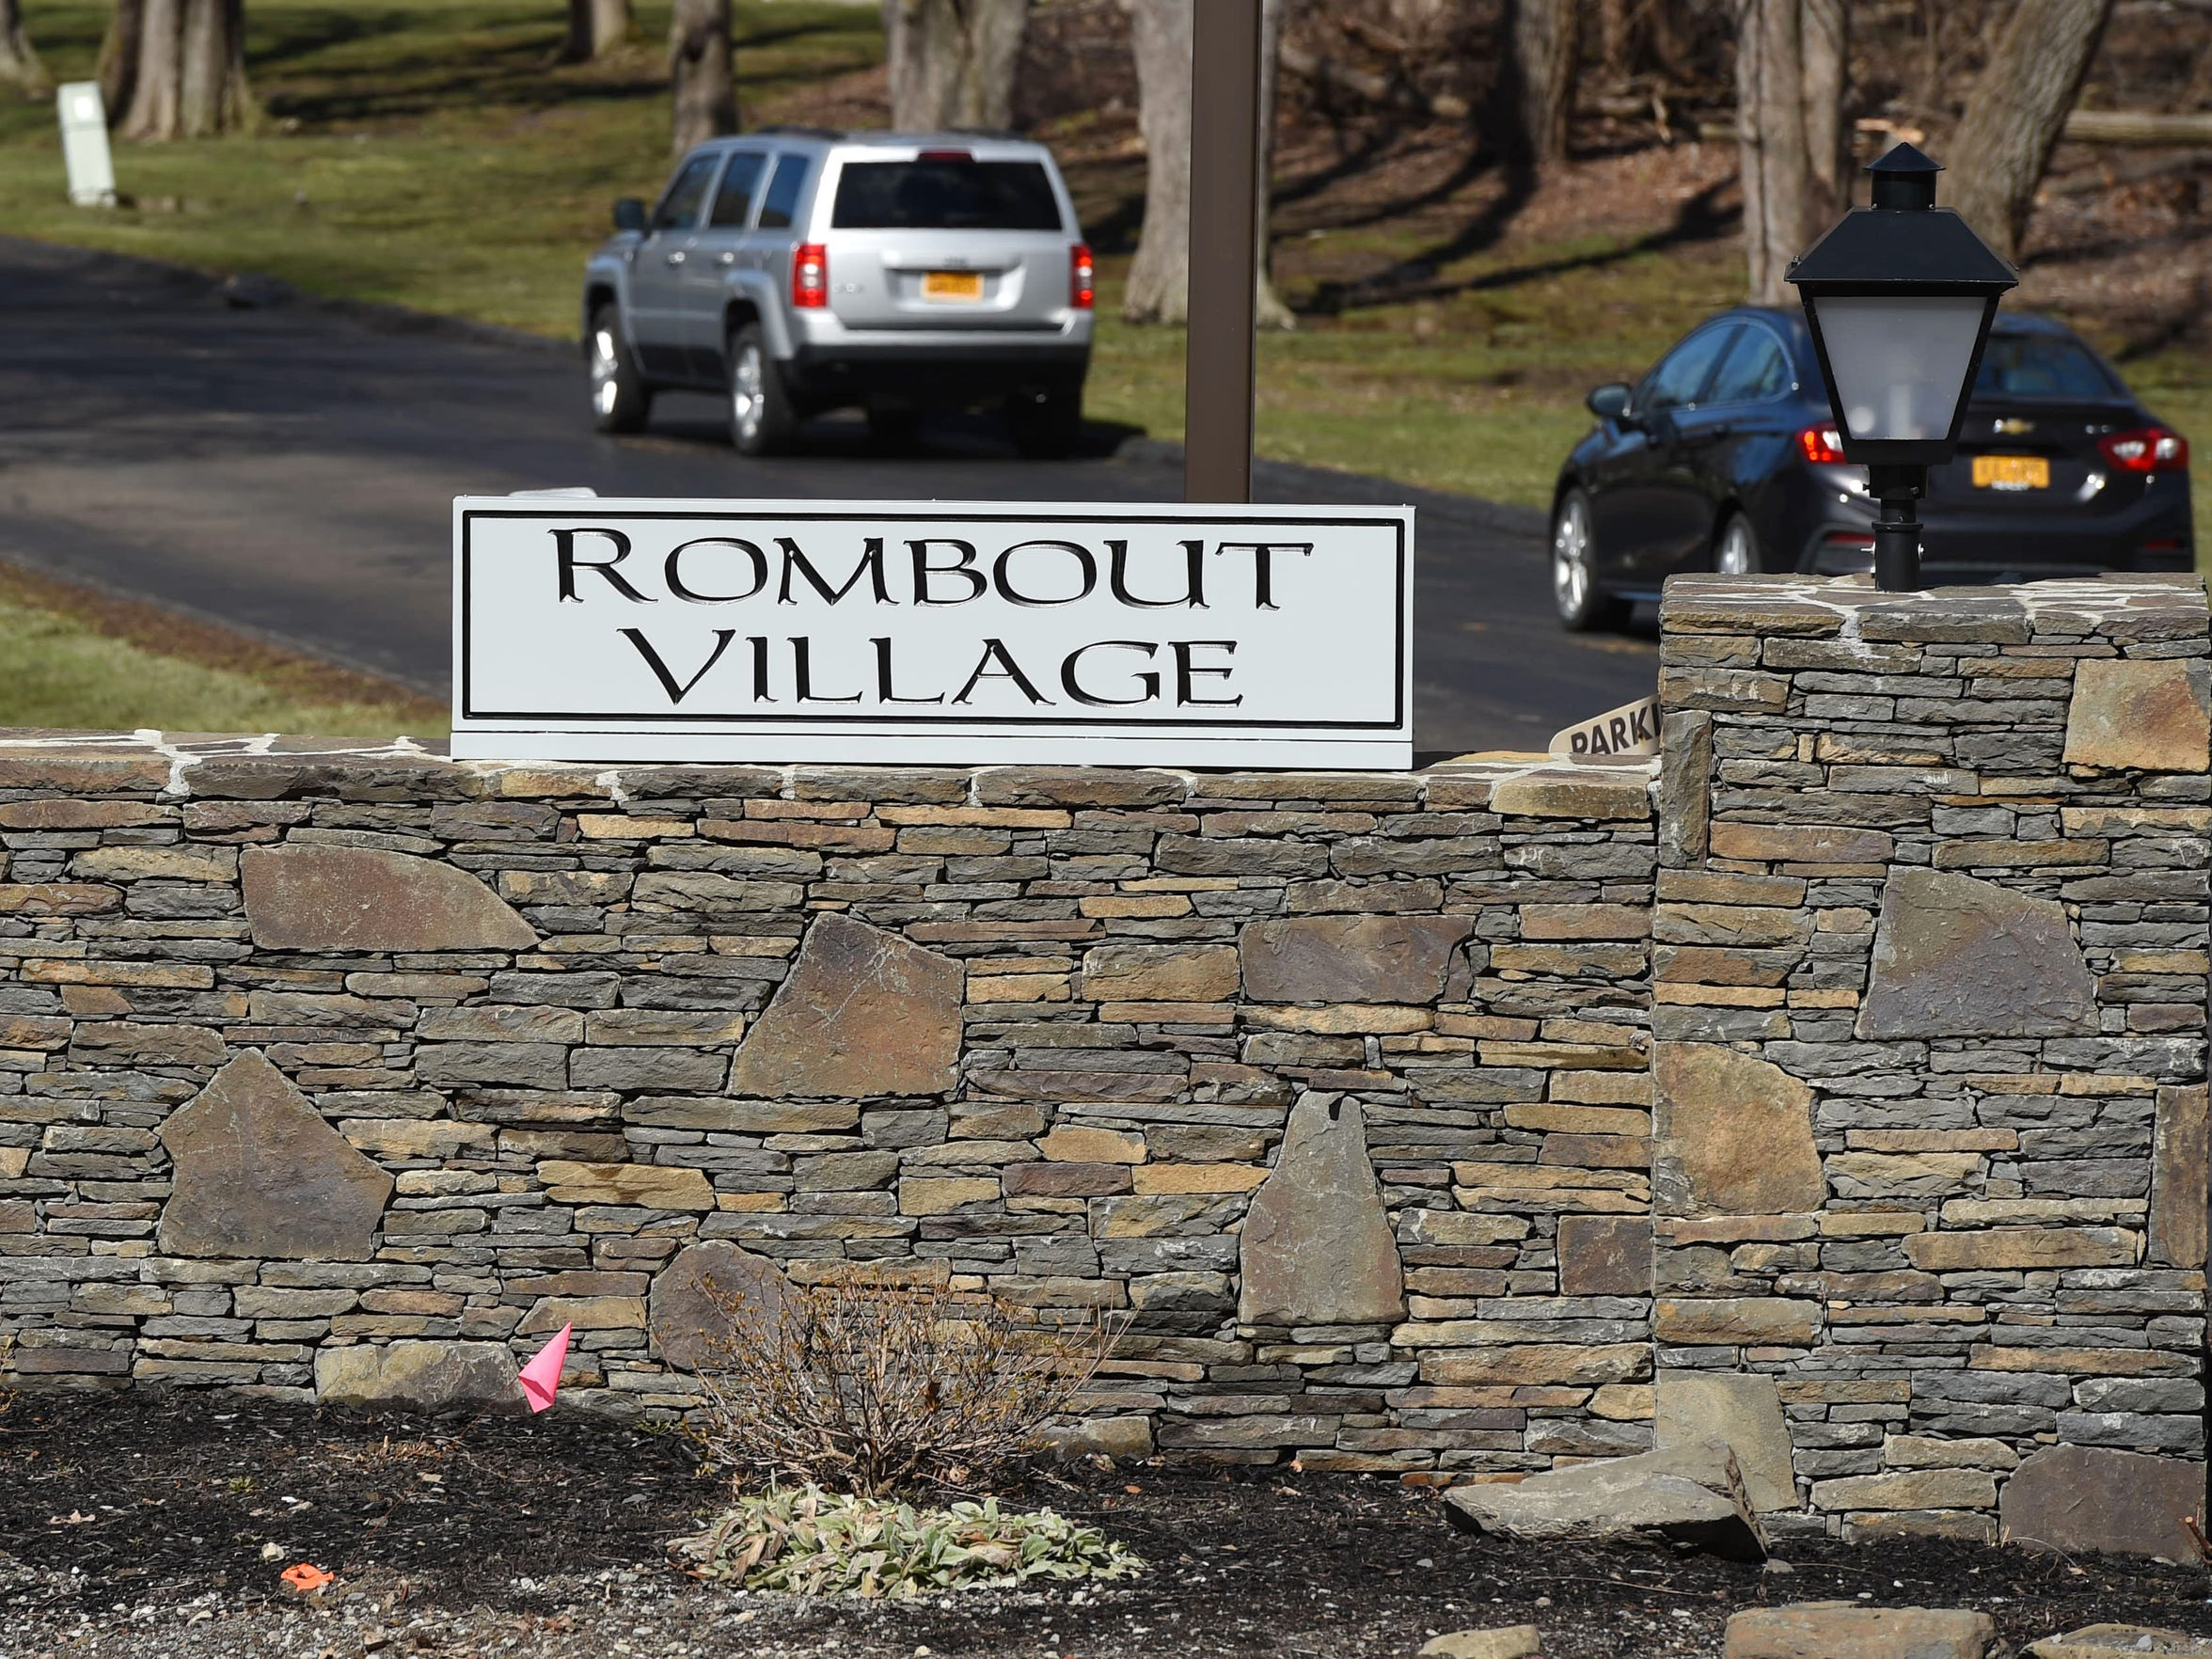 Rombout Village is a 144-unit cooperative apartment complex located in the Town of Fishkill. The co-op's board is the subject of two lawsuits claiming fines have been used to harass and intimidate the plaintiffs.